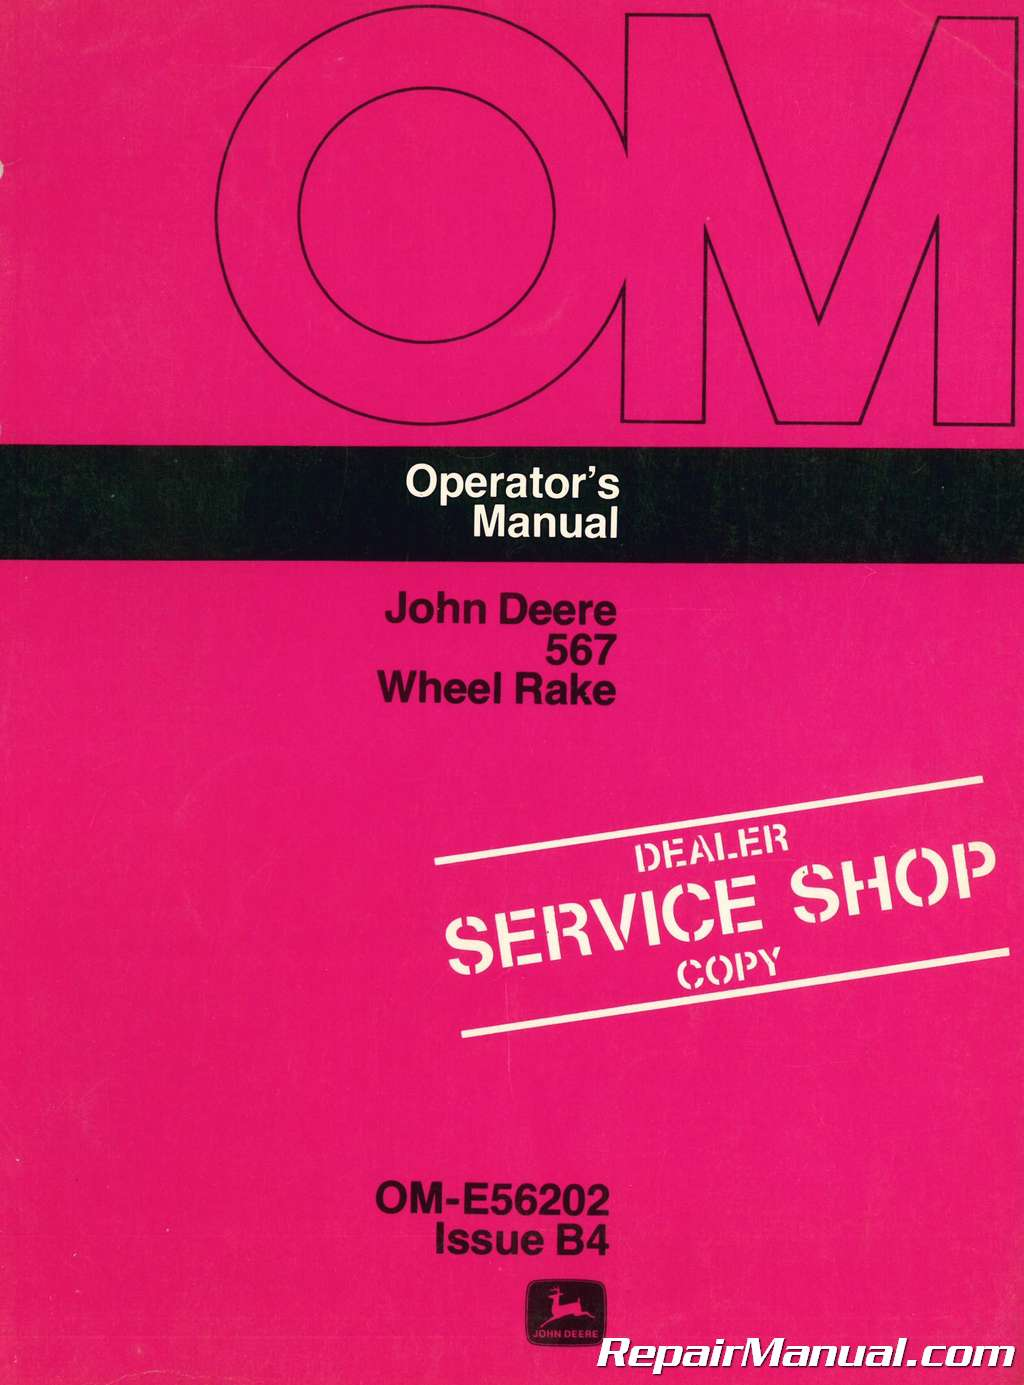 John Deere 567 Wheel Rake Operators Manual